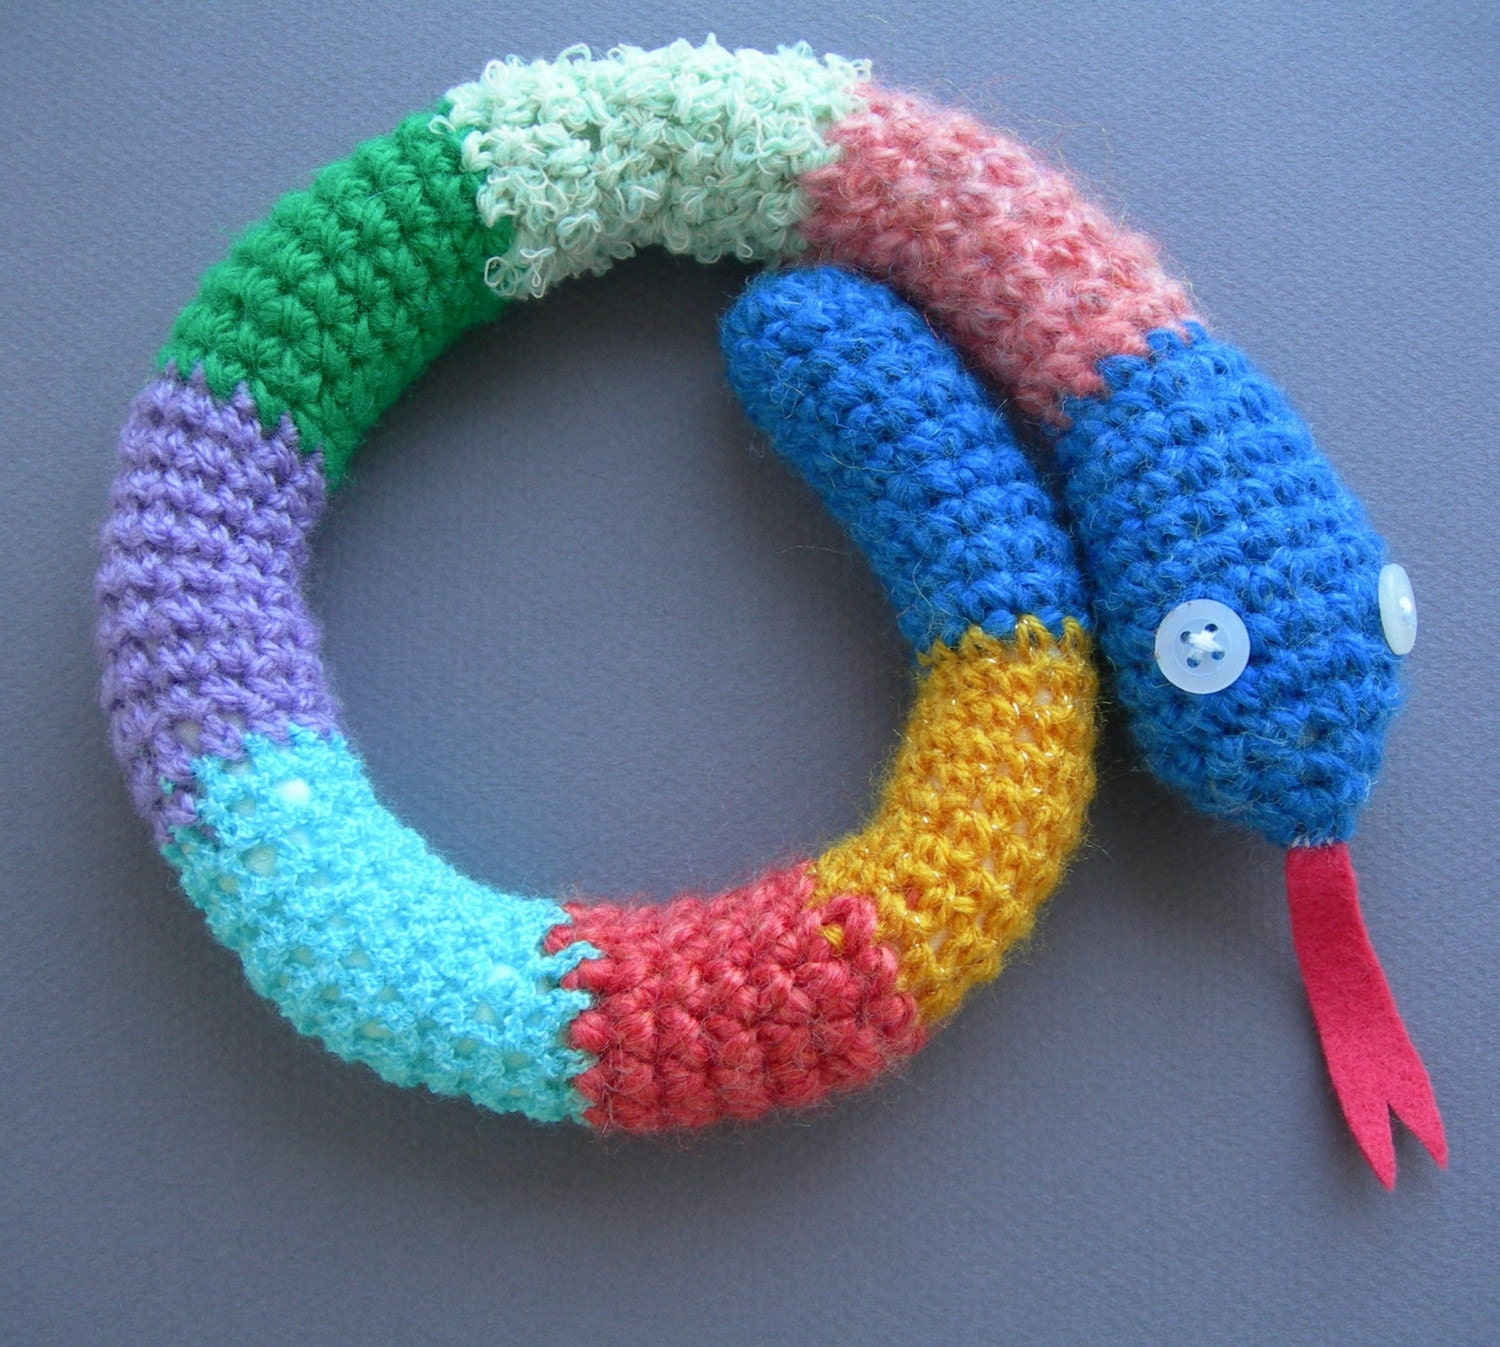 Crocheted snake